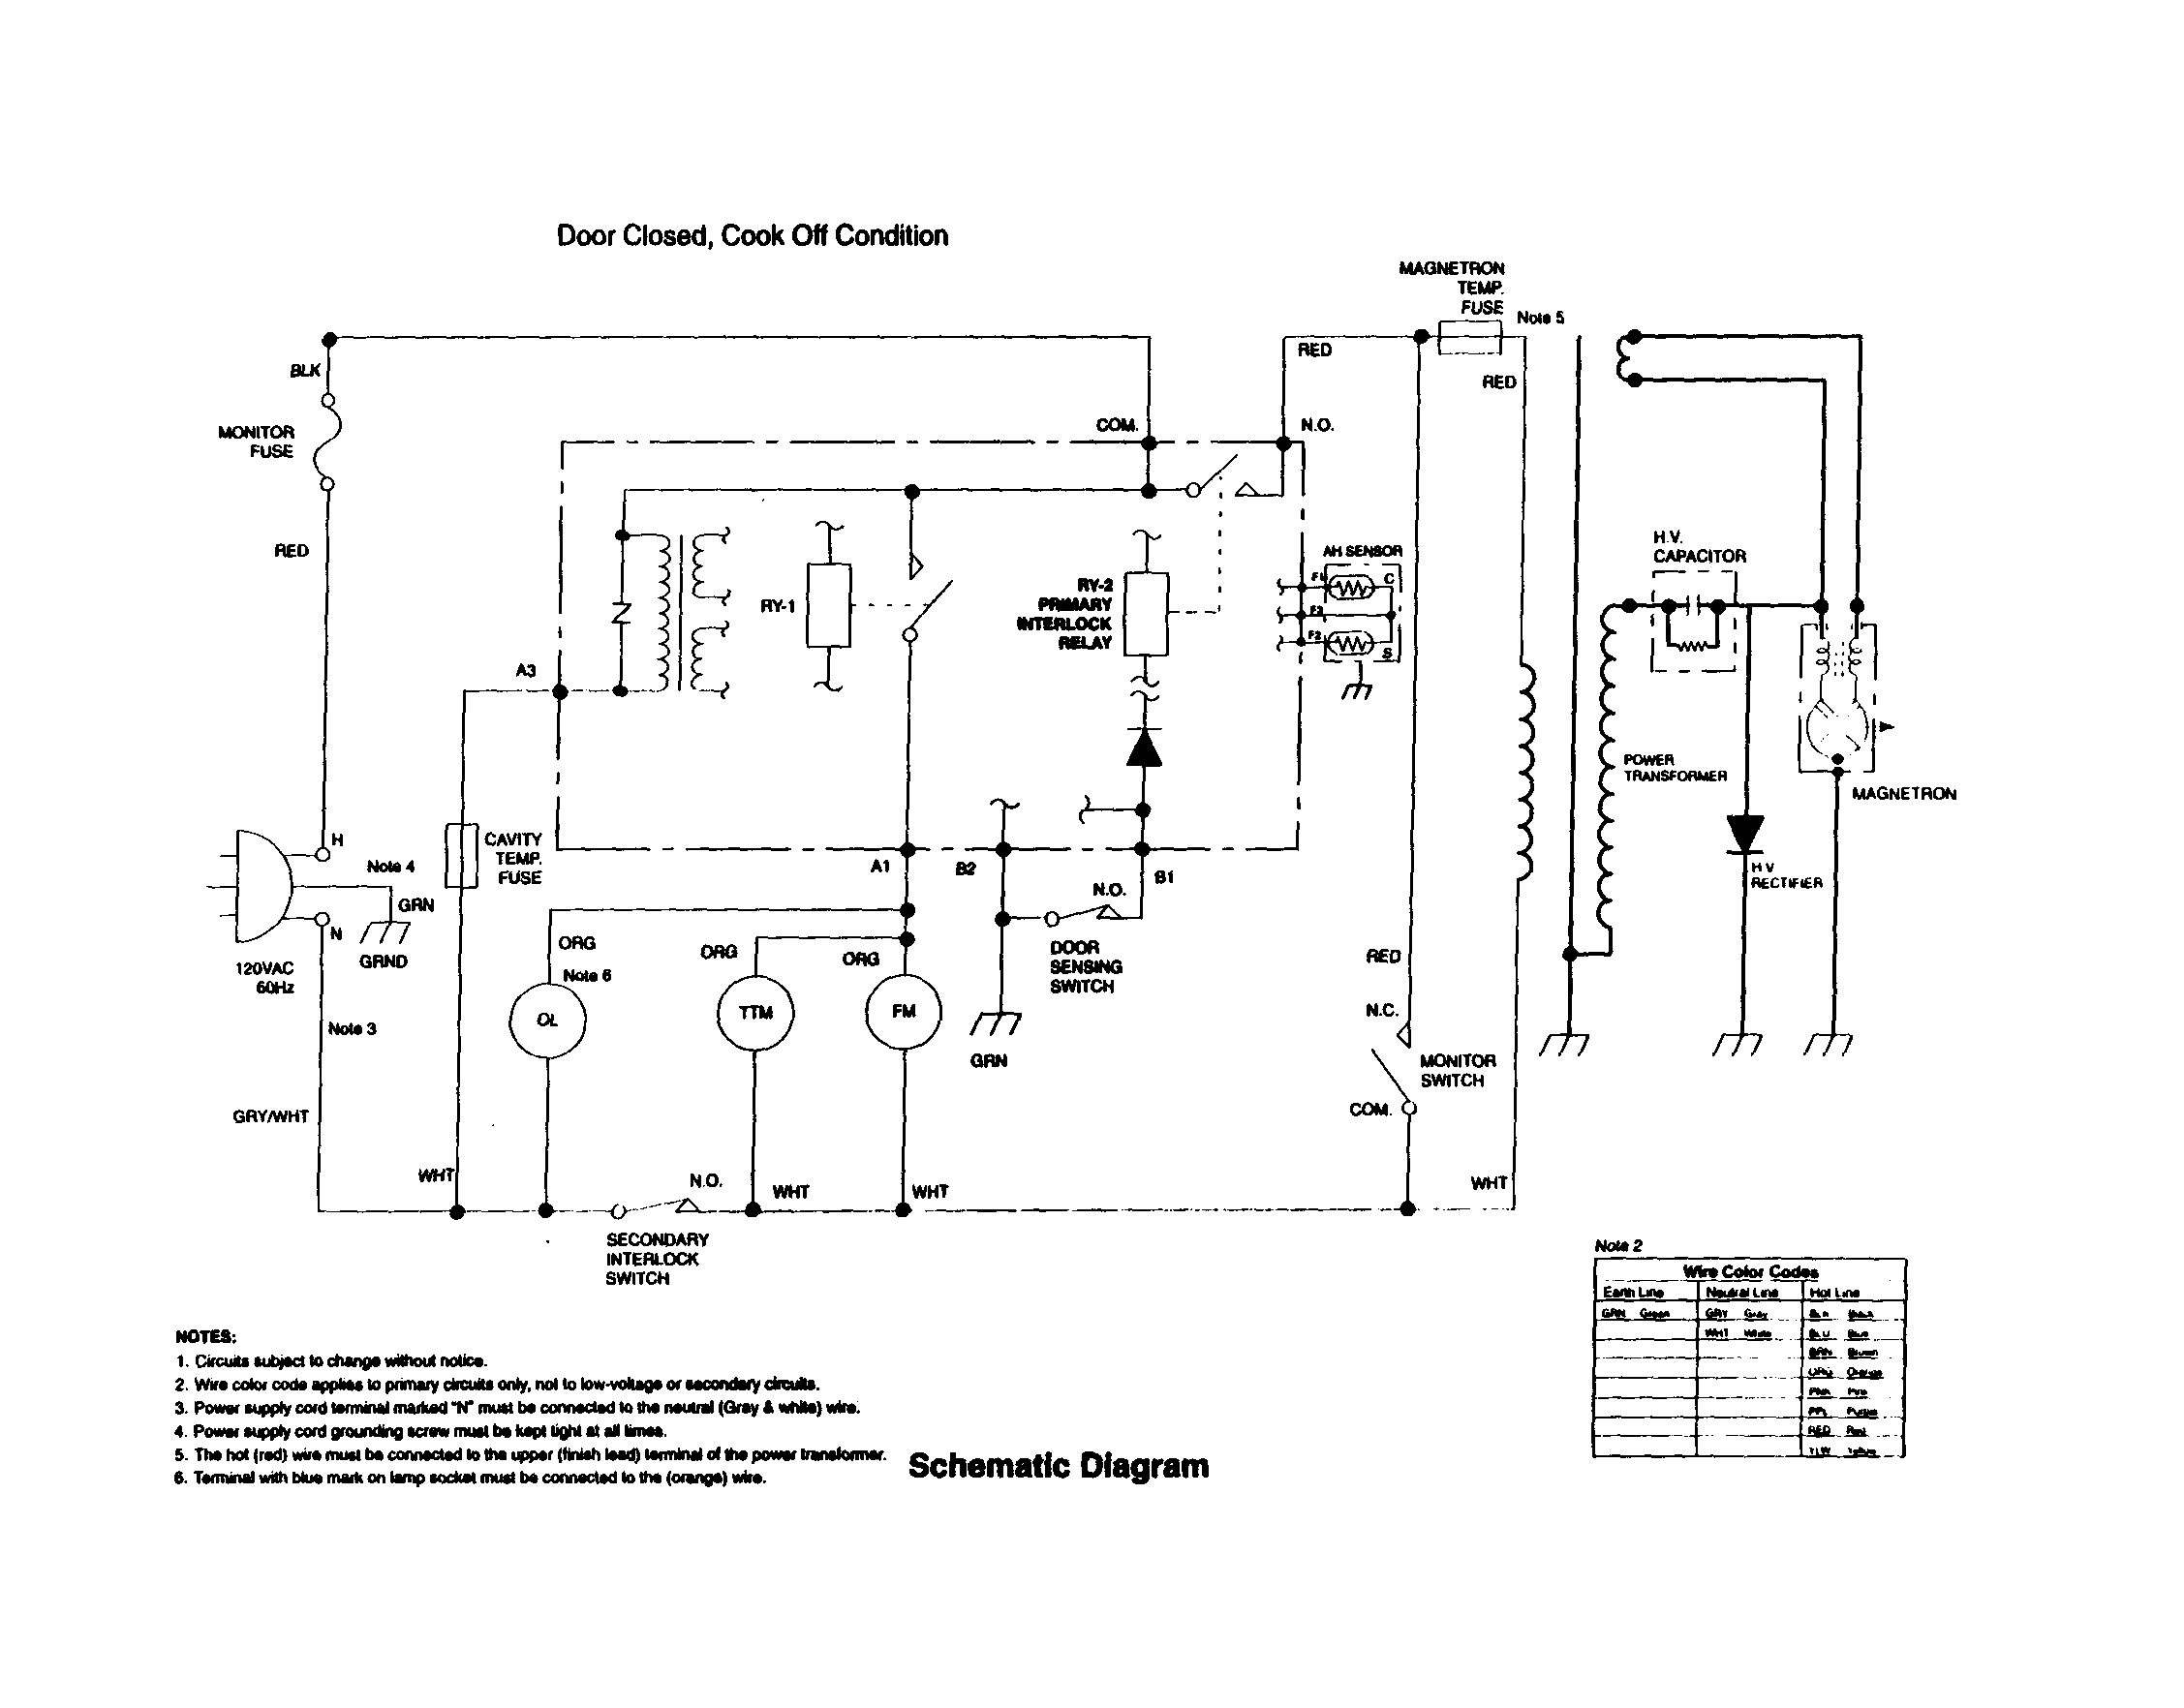 Wiring Diagram For Ge Microwave